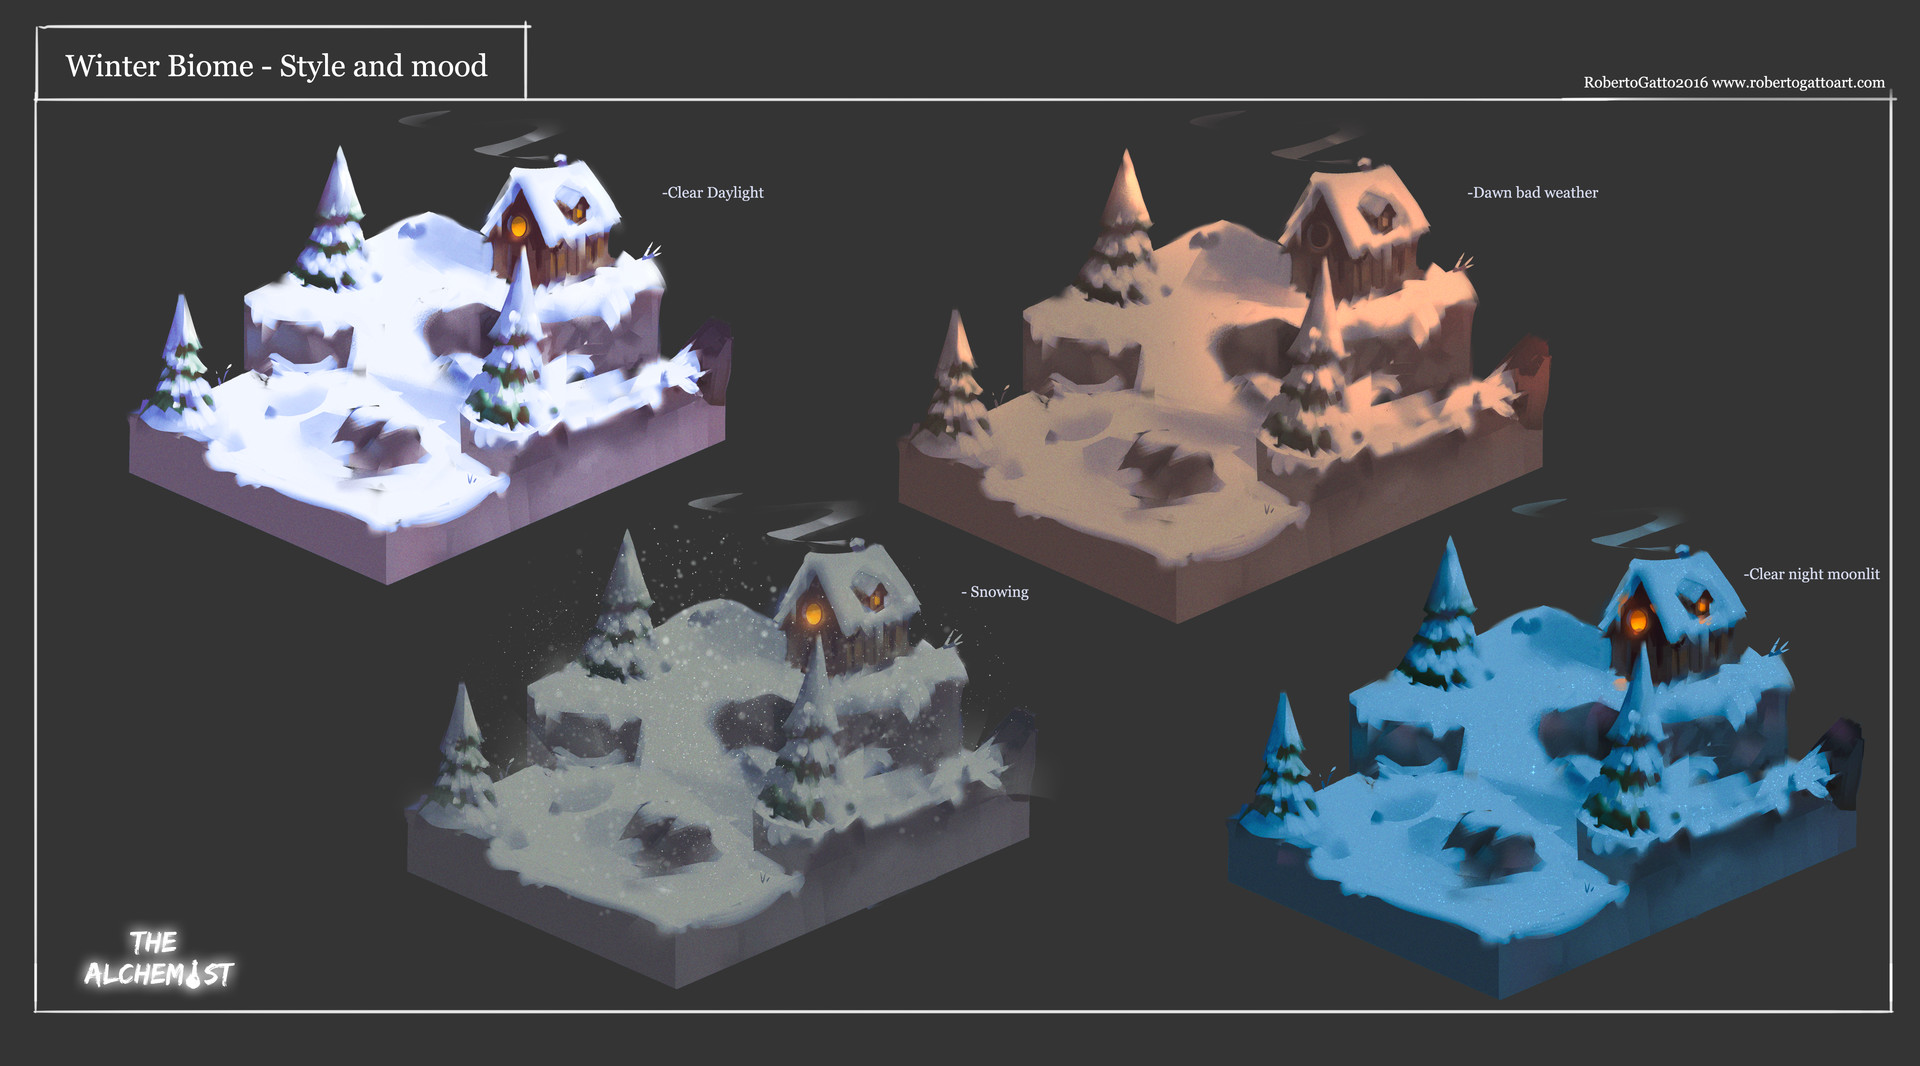 The Alchemist - Winter Biome style and mood